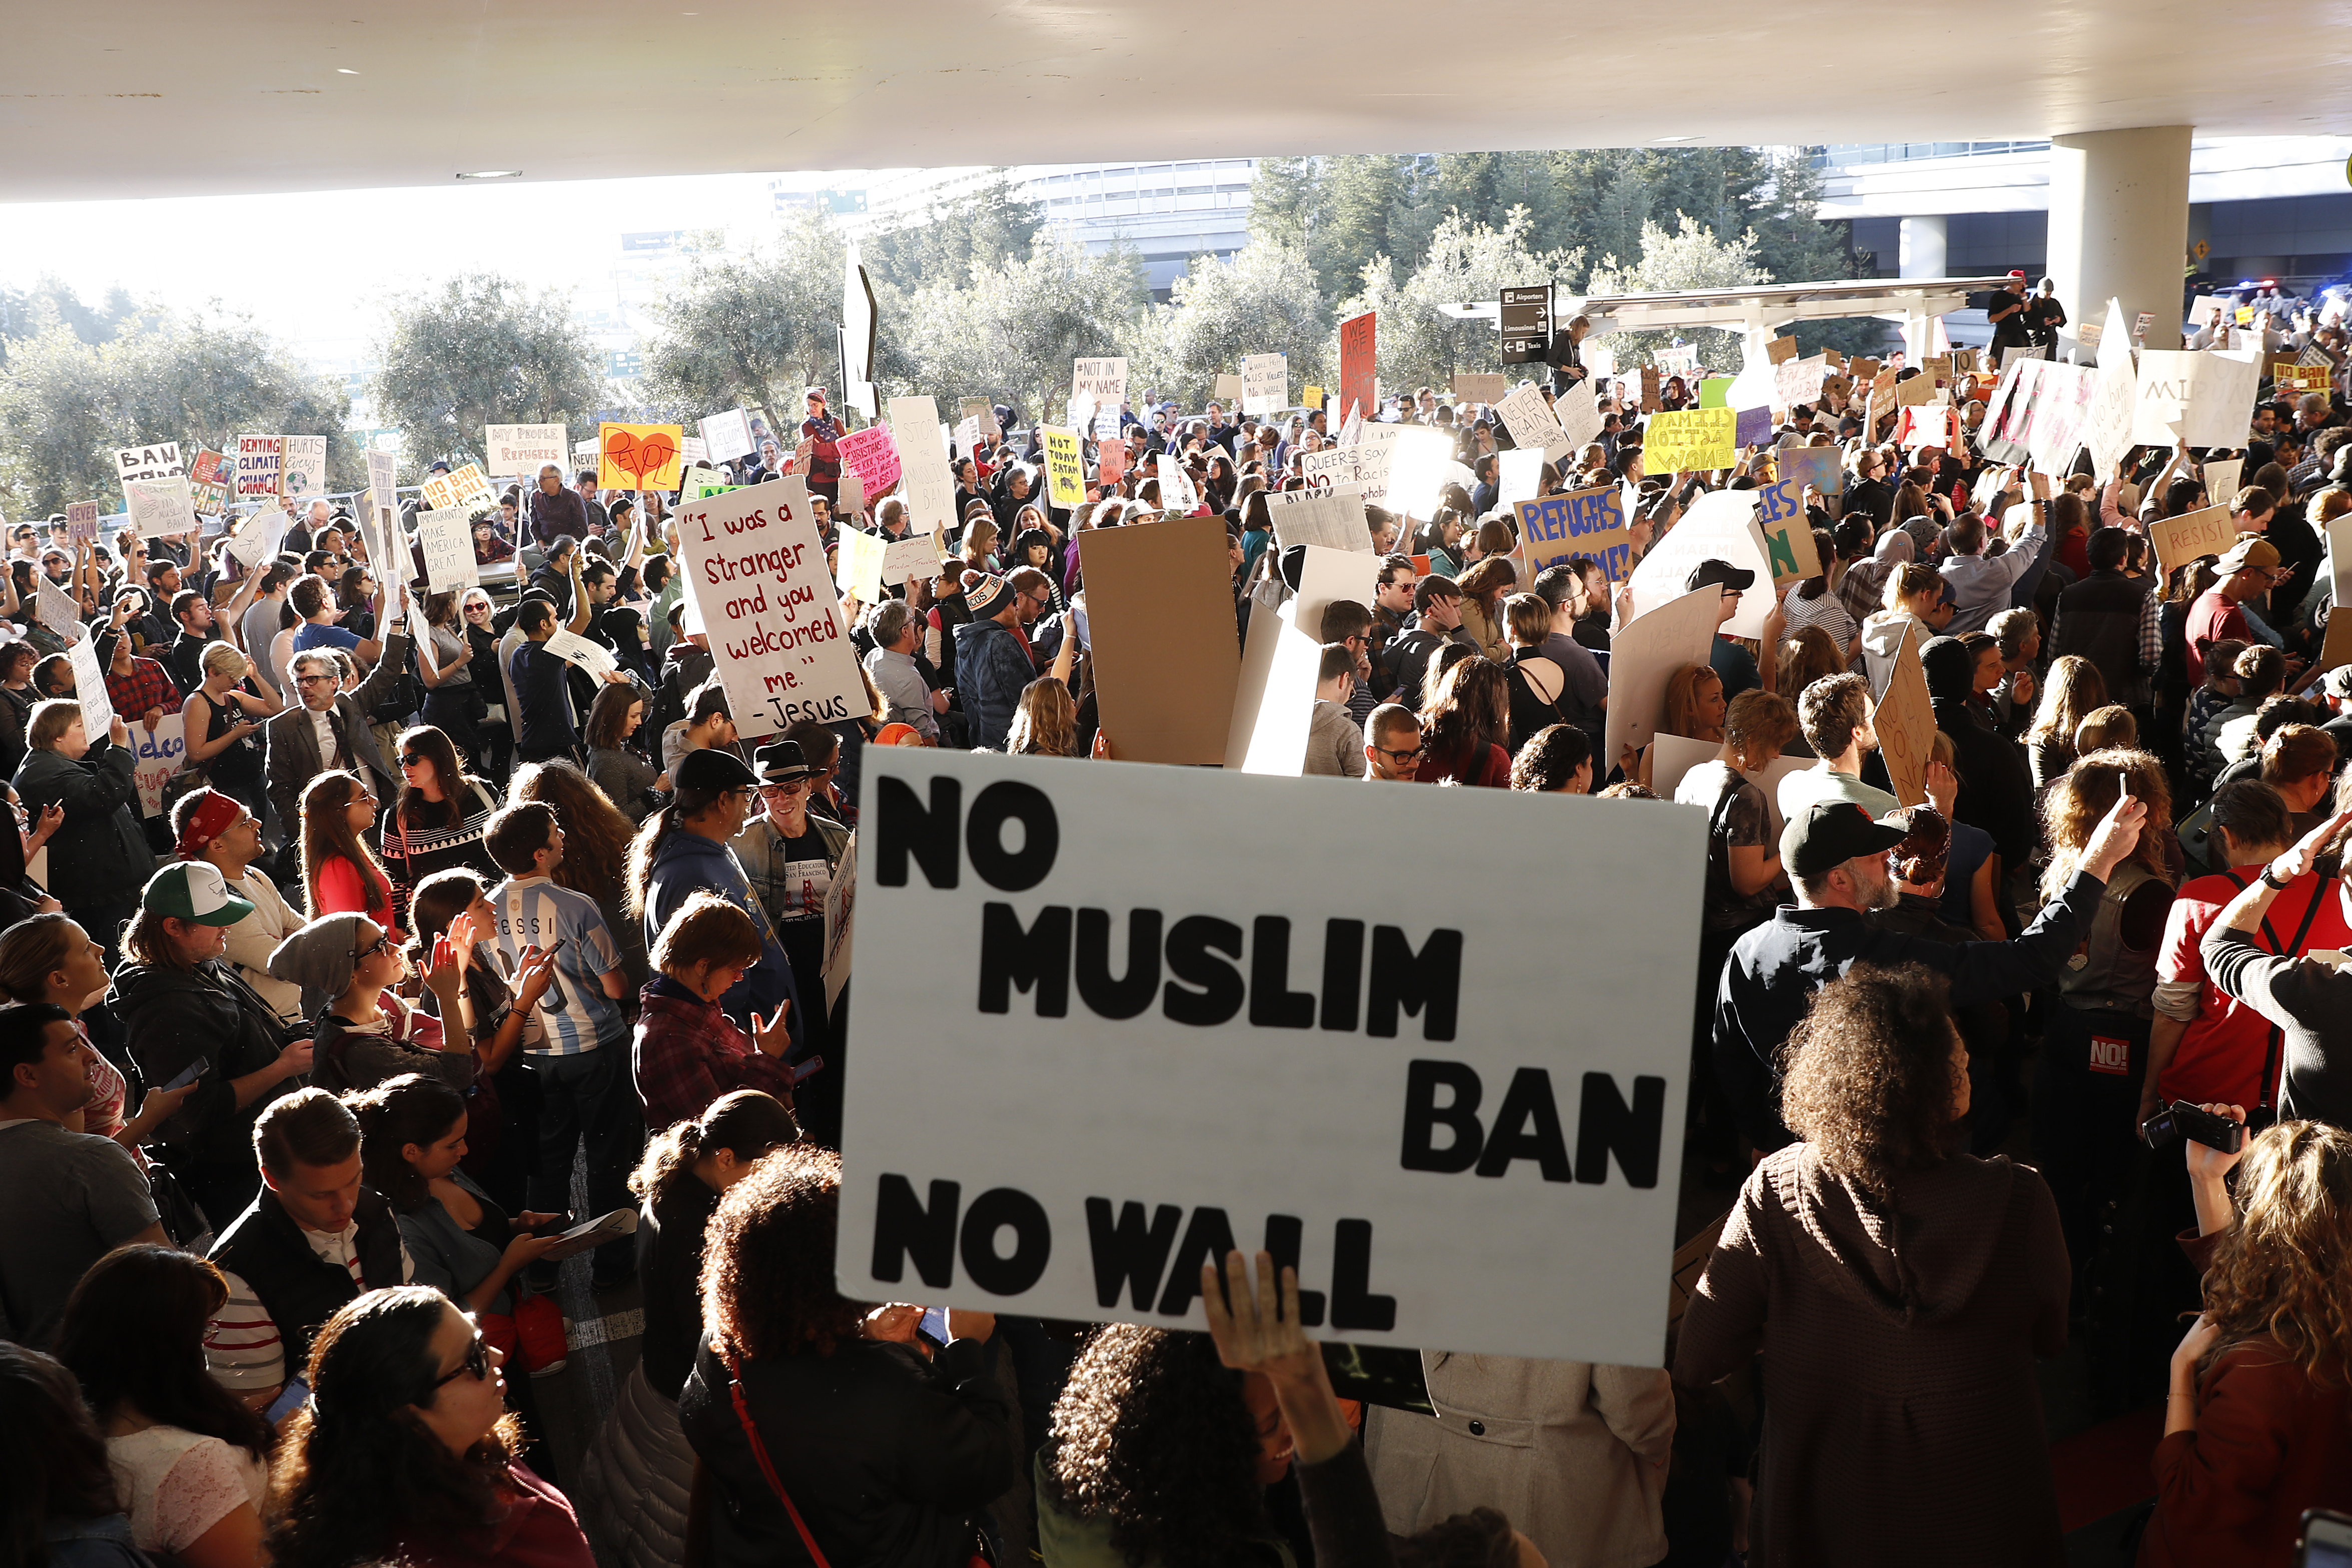 Protesters gathered at San Francisco International Airport this week to demonstrate against Trump's recent immigration order.